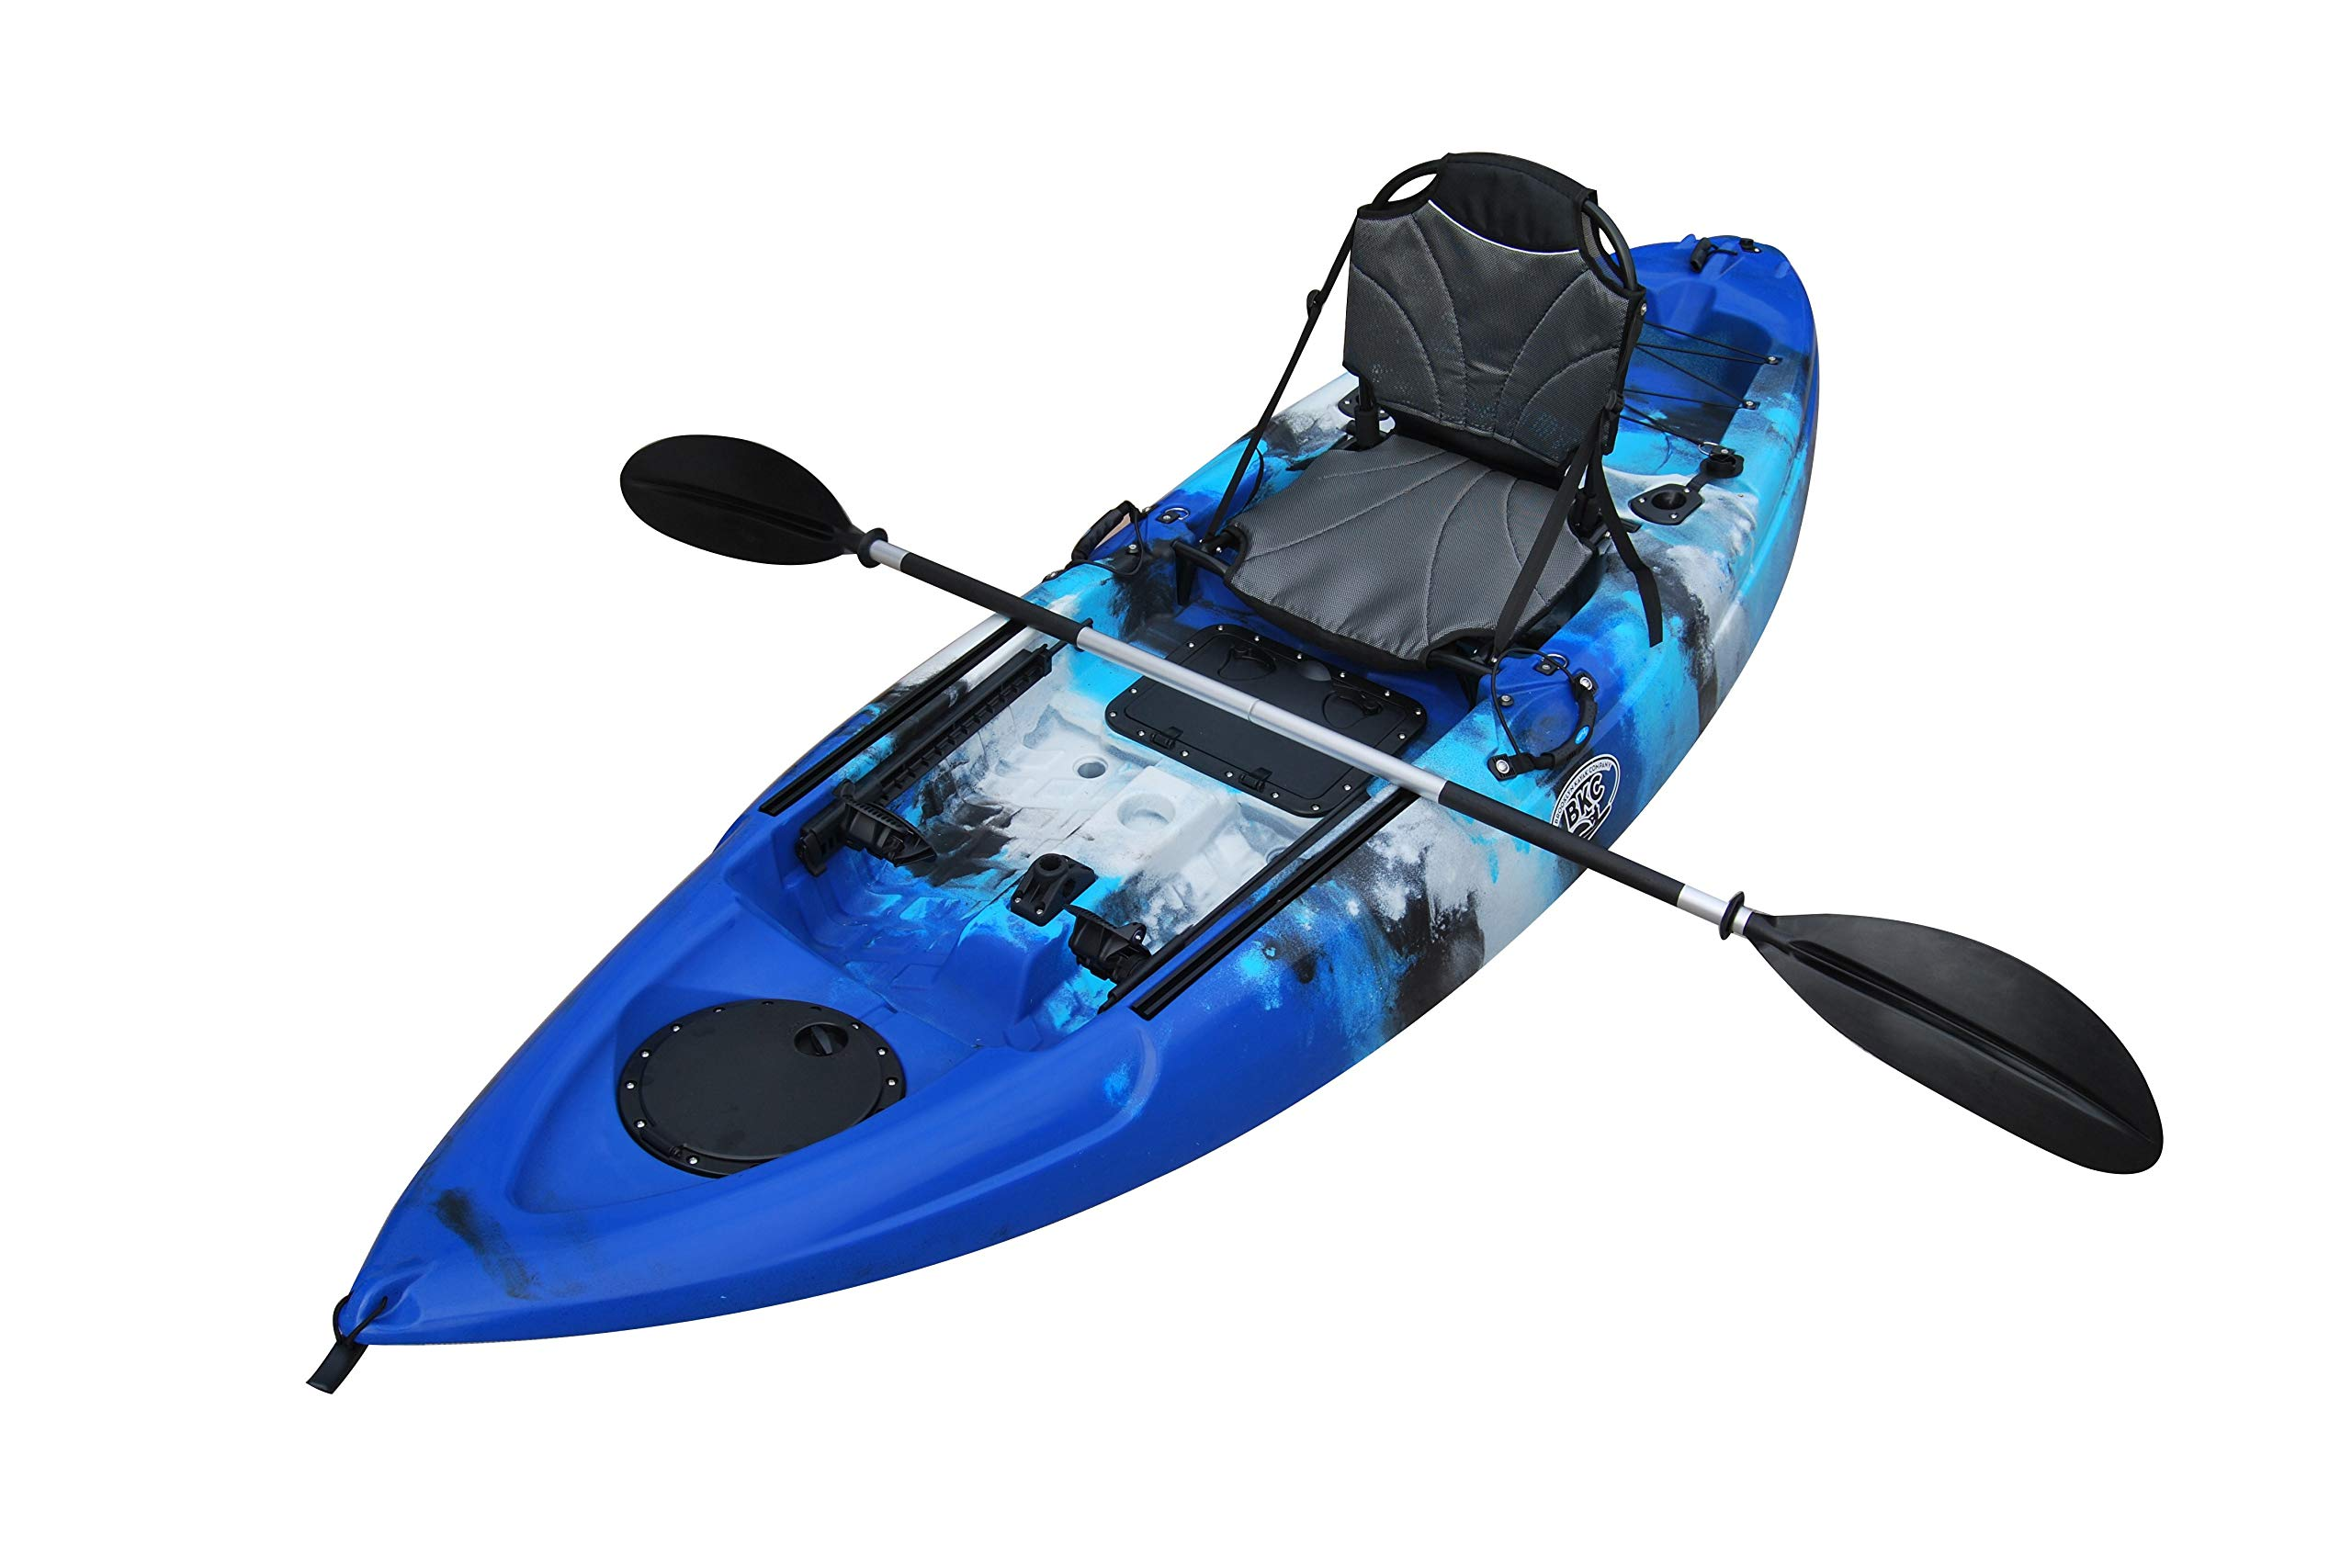 Brooklyn Kayak Company BKC UH-FK285 9.5 Foot Sit on Top Single Fishing Kayak with Upright Seat and Paddle Included (BLUECAMO) by Brooklyn Kayak Company